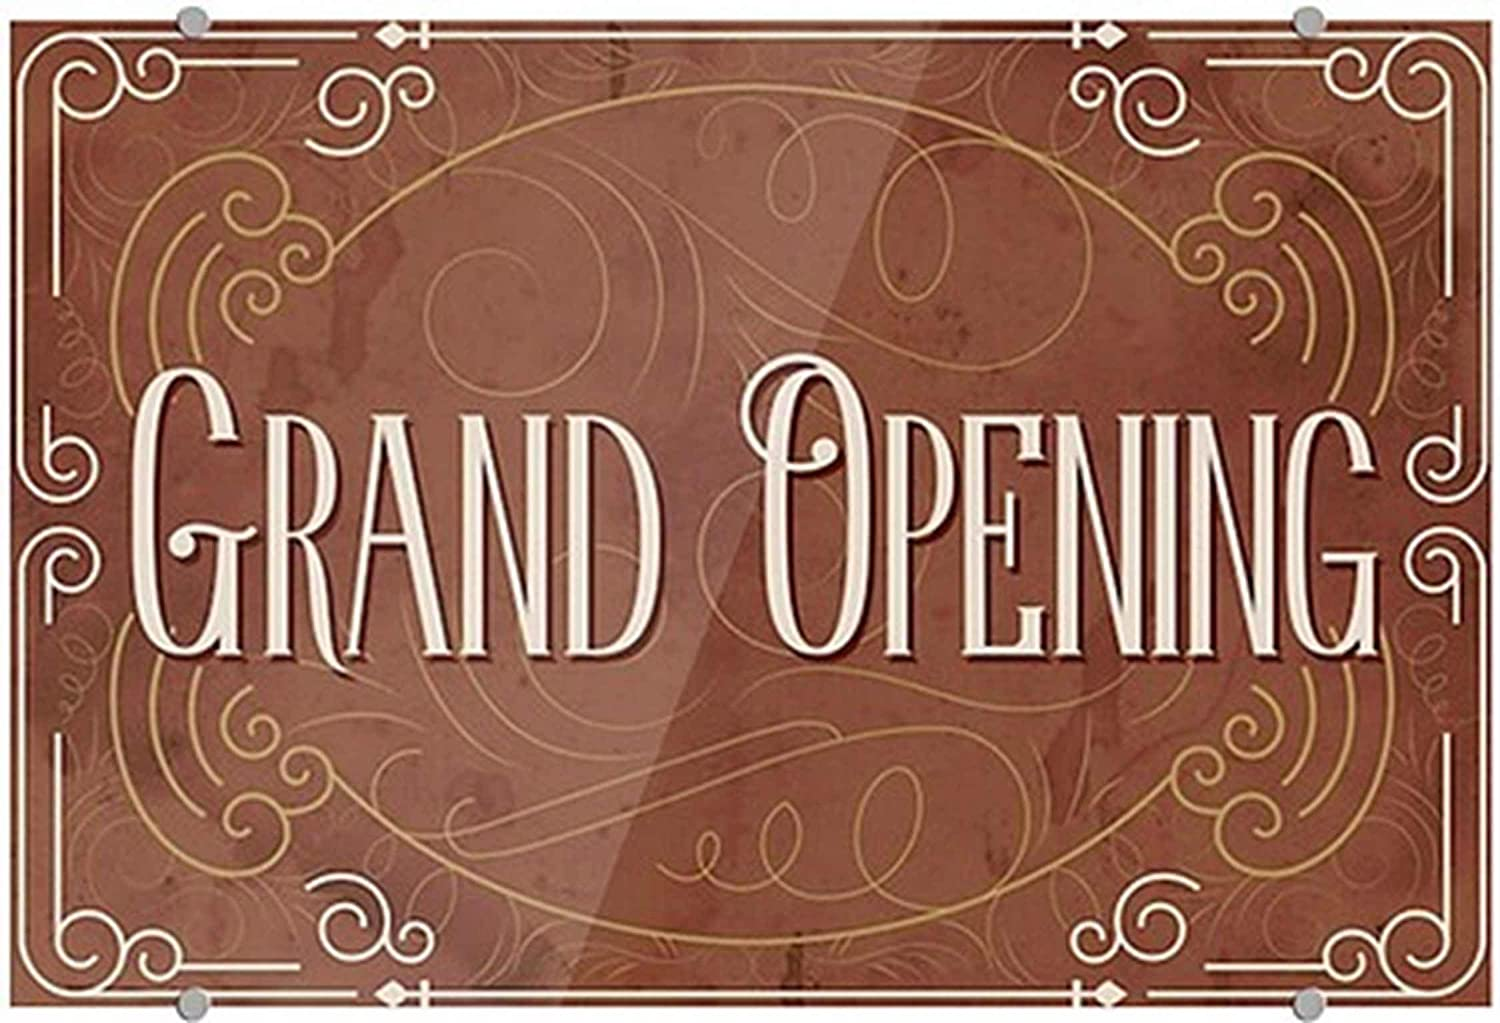 CGSignLab 2453240_5mbsw_36x24_None Grand Max 49% OFF -Victorian Card Opening Sale Special Price